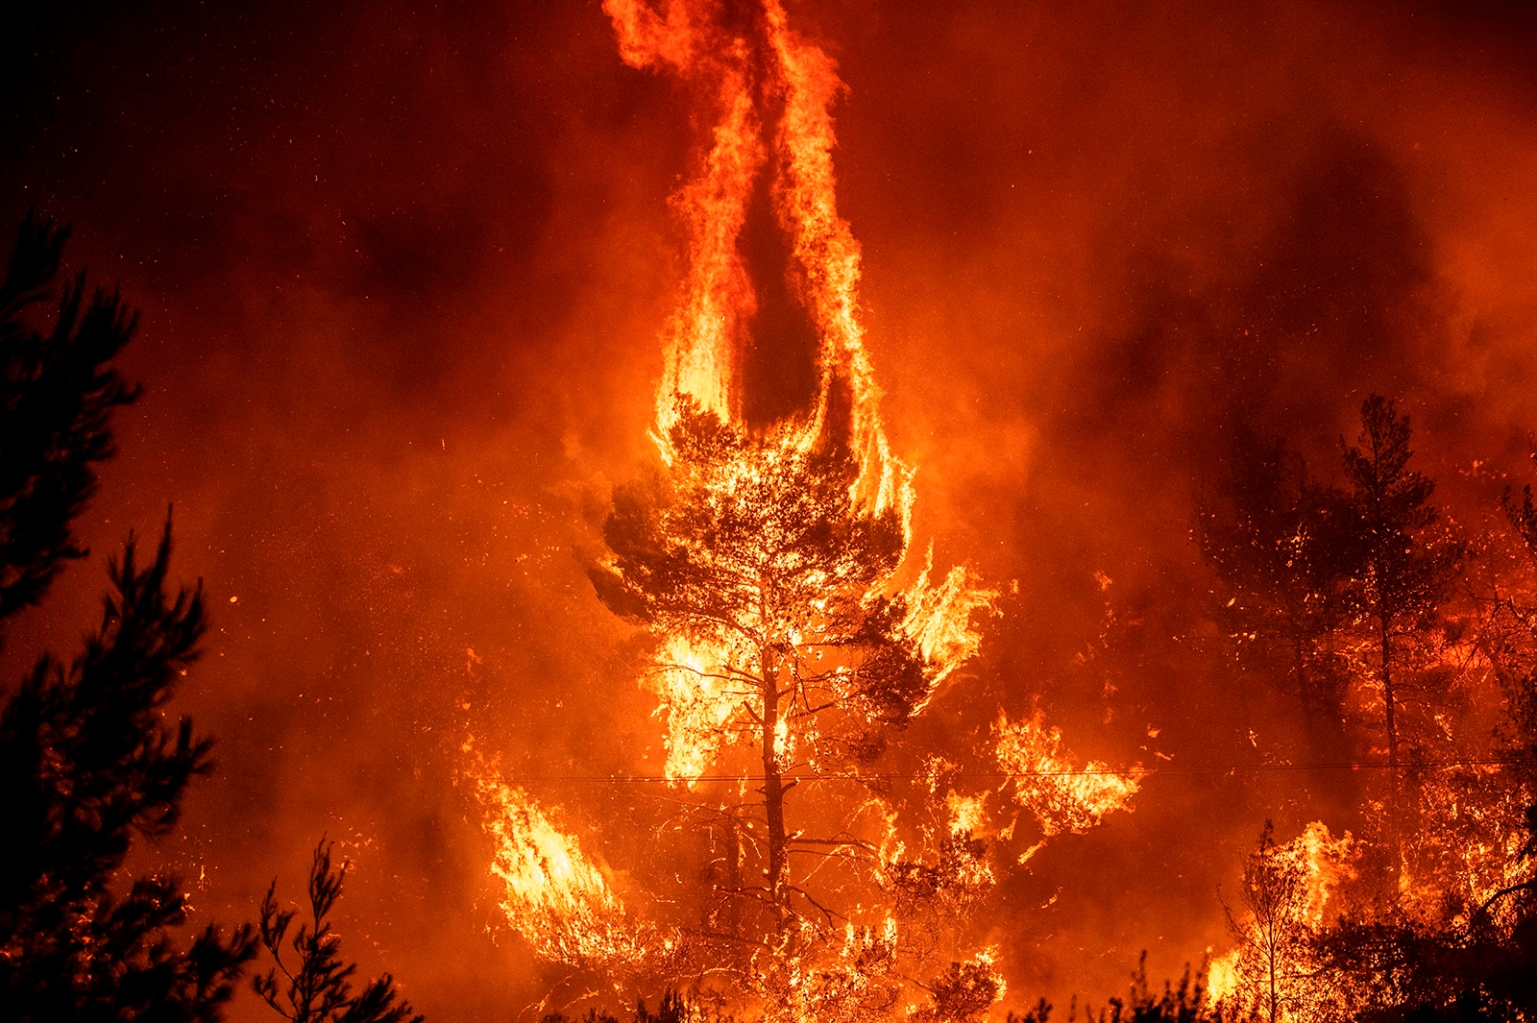 Flames rise from a forest fire near the village of Makrimalli on the island of Evia, northeast of Athens, on Aug. 13. Hundreds of villagers were evacuated as scores of firefighters battled a major wildfire on the country's second-largest island of Evia. ANGELOS TZORTZINIS/AFP/Getty Images